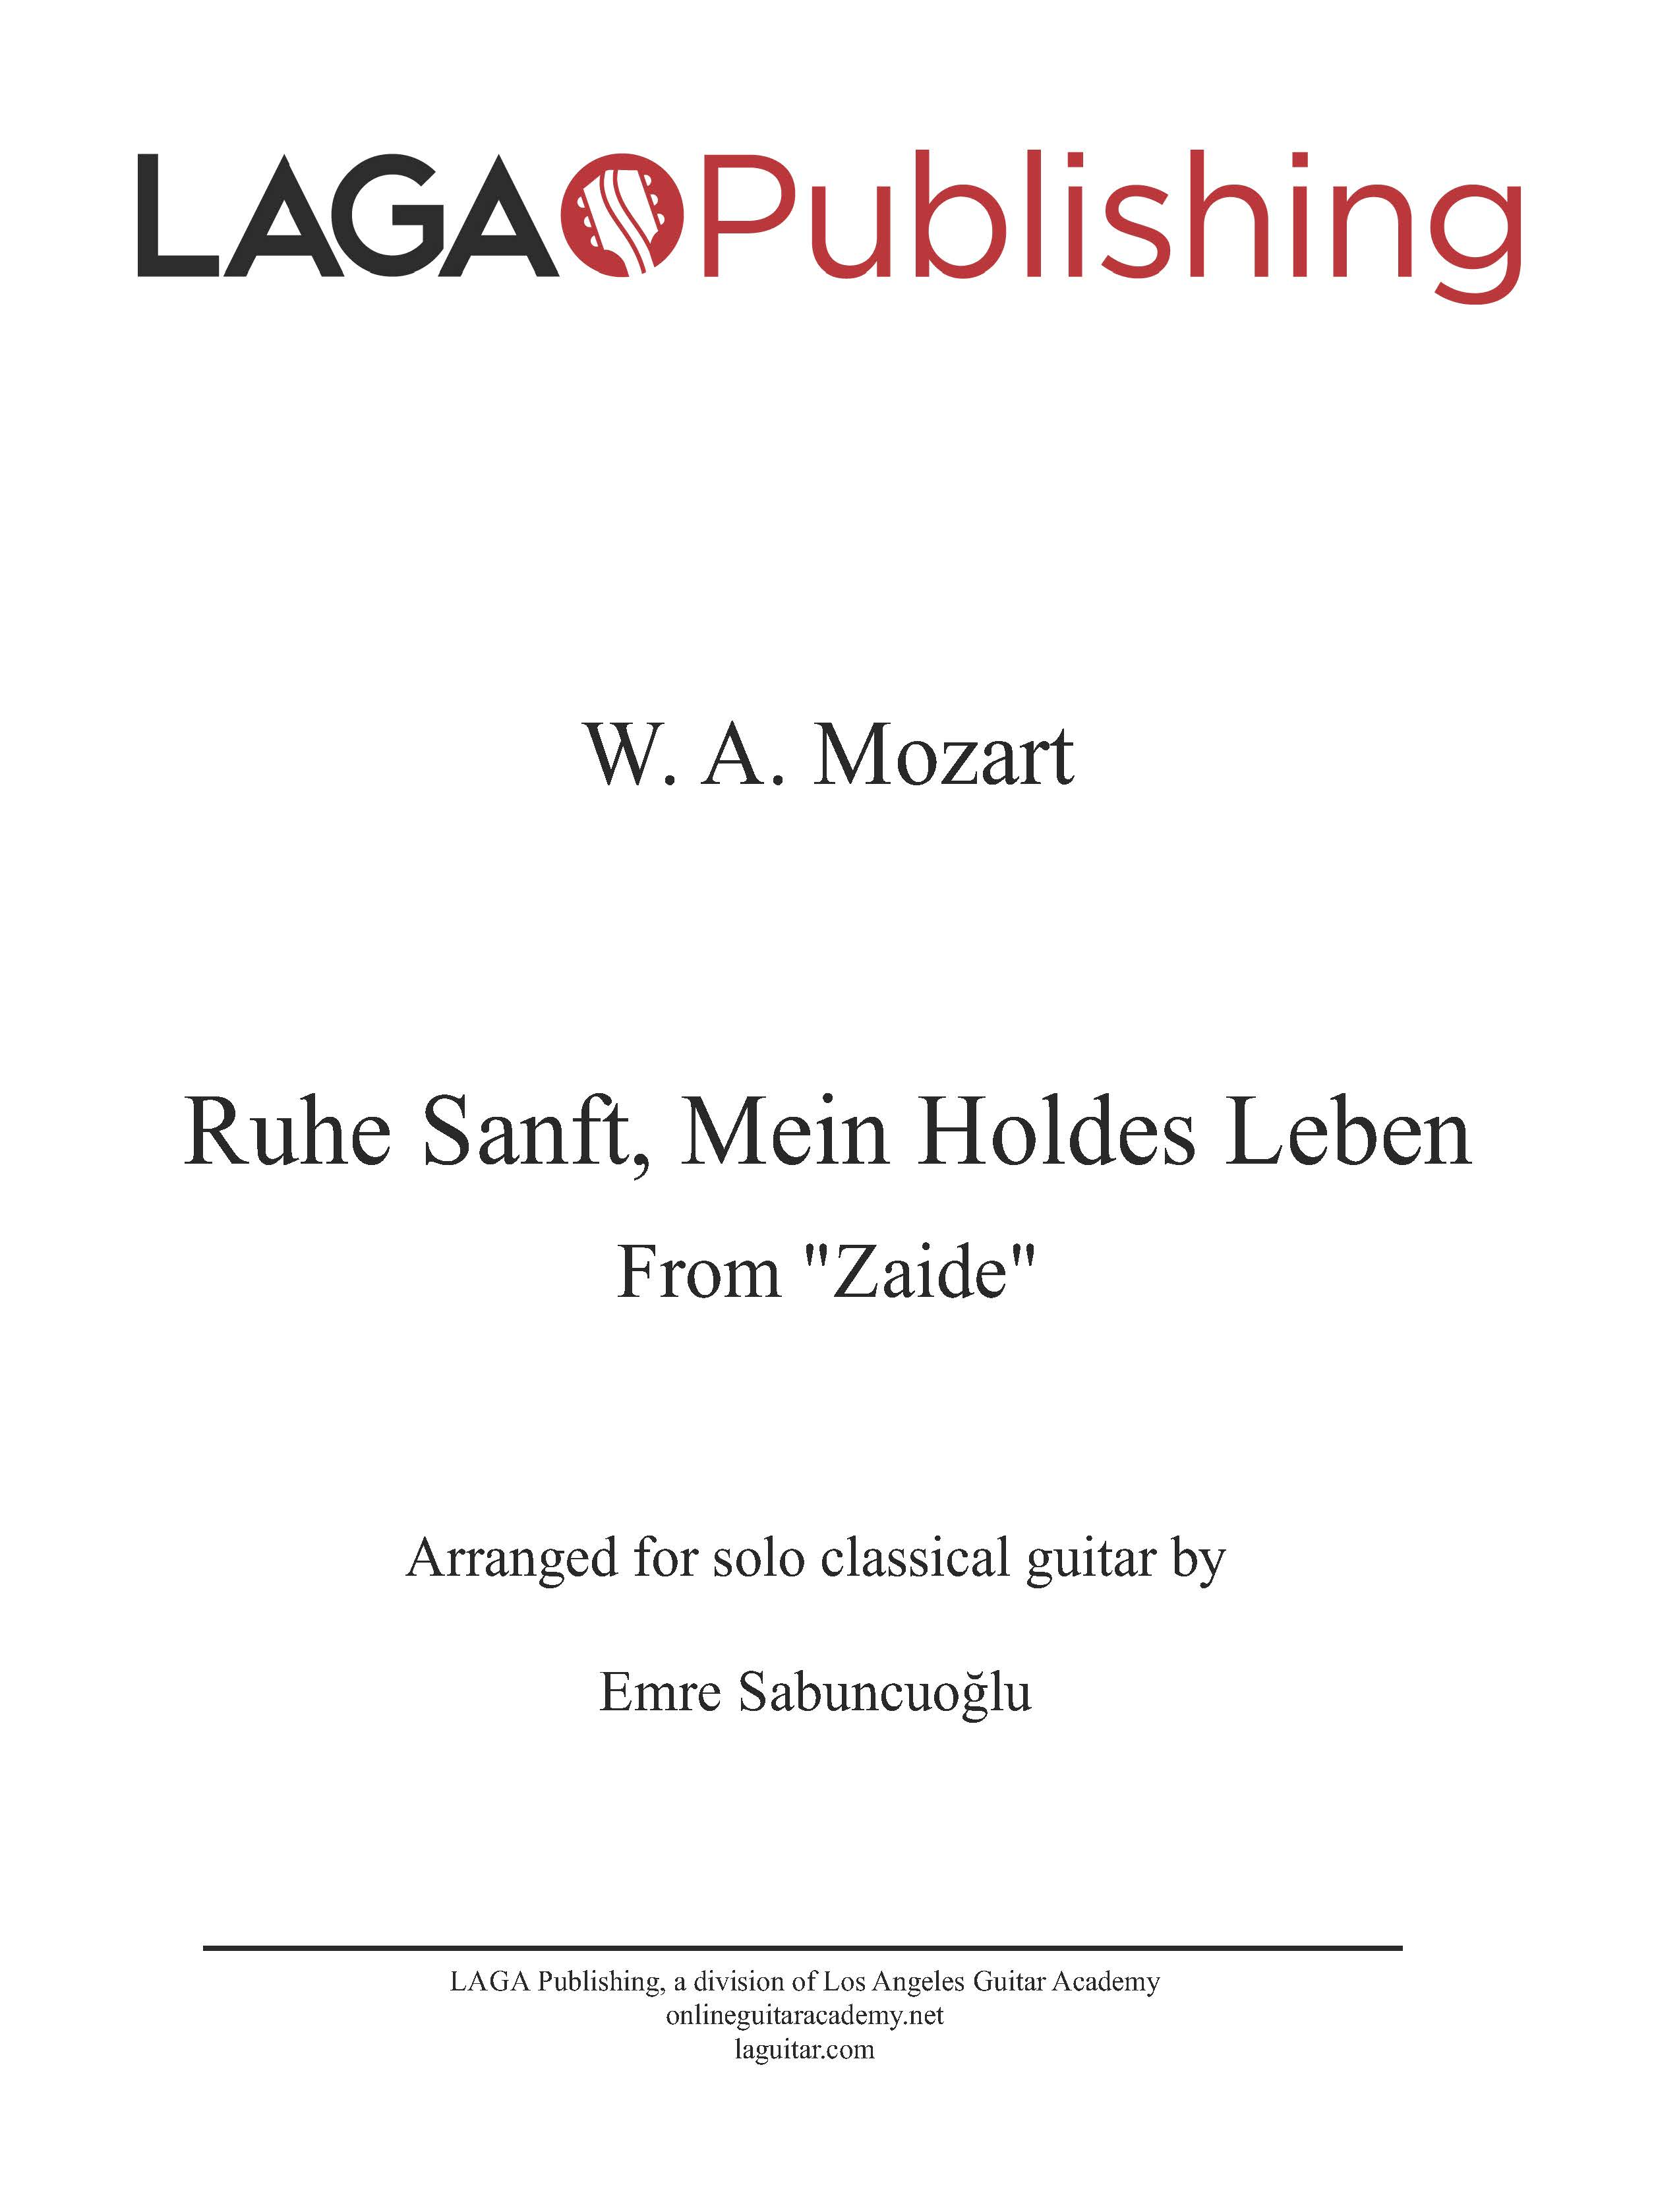 LAGA-Publishing-Mozart-Zaide-Ruhe-Sanft-Score-and-Tab